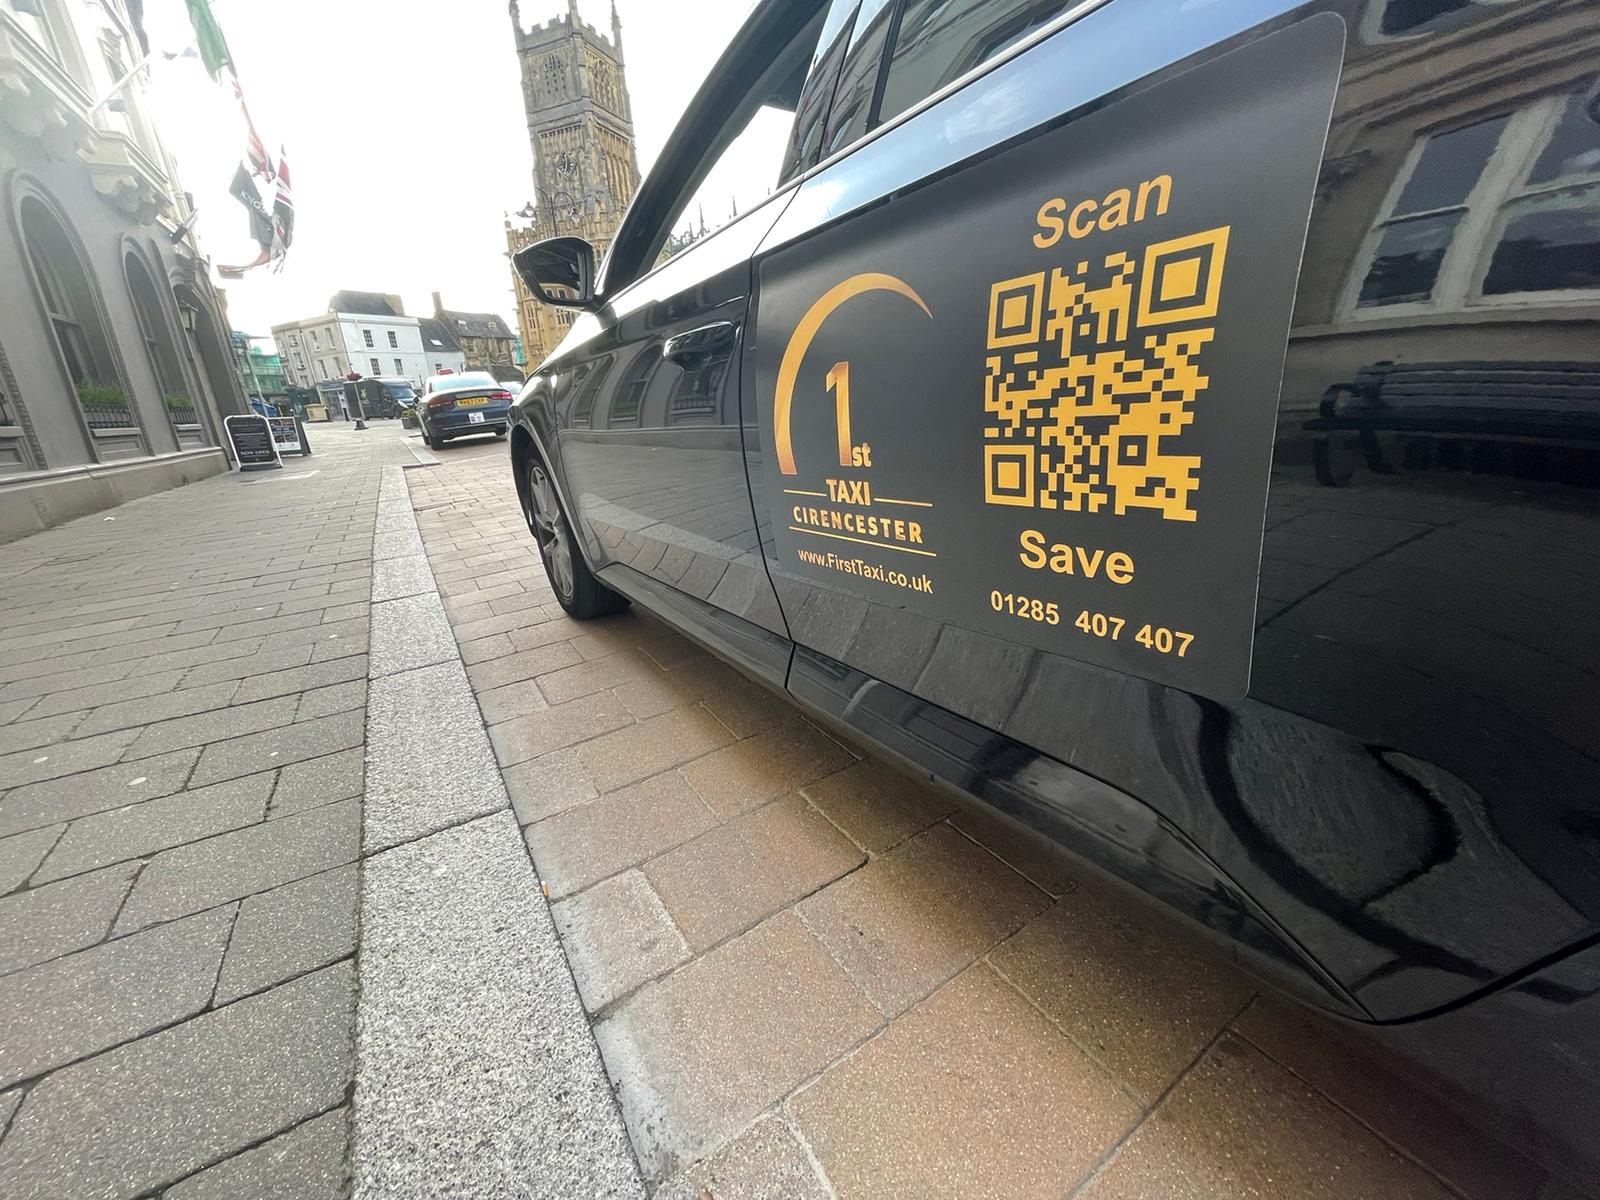 Taxi in Cirencester